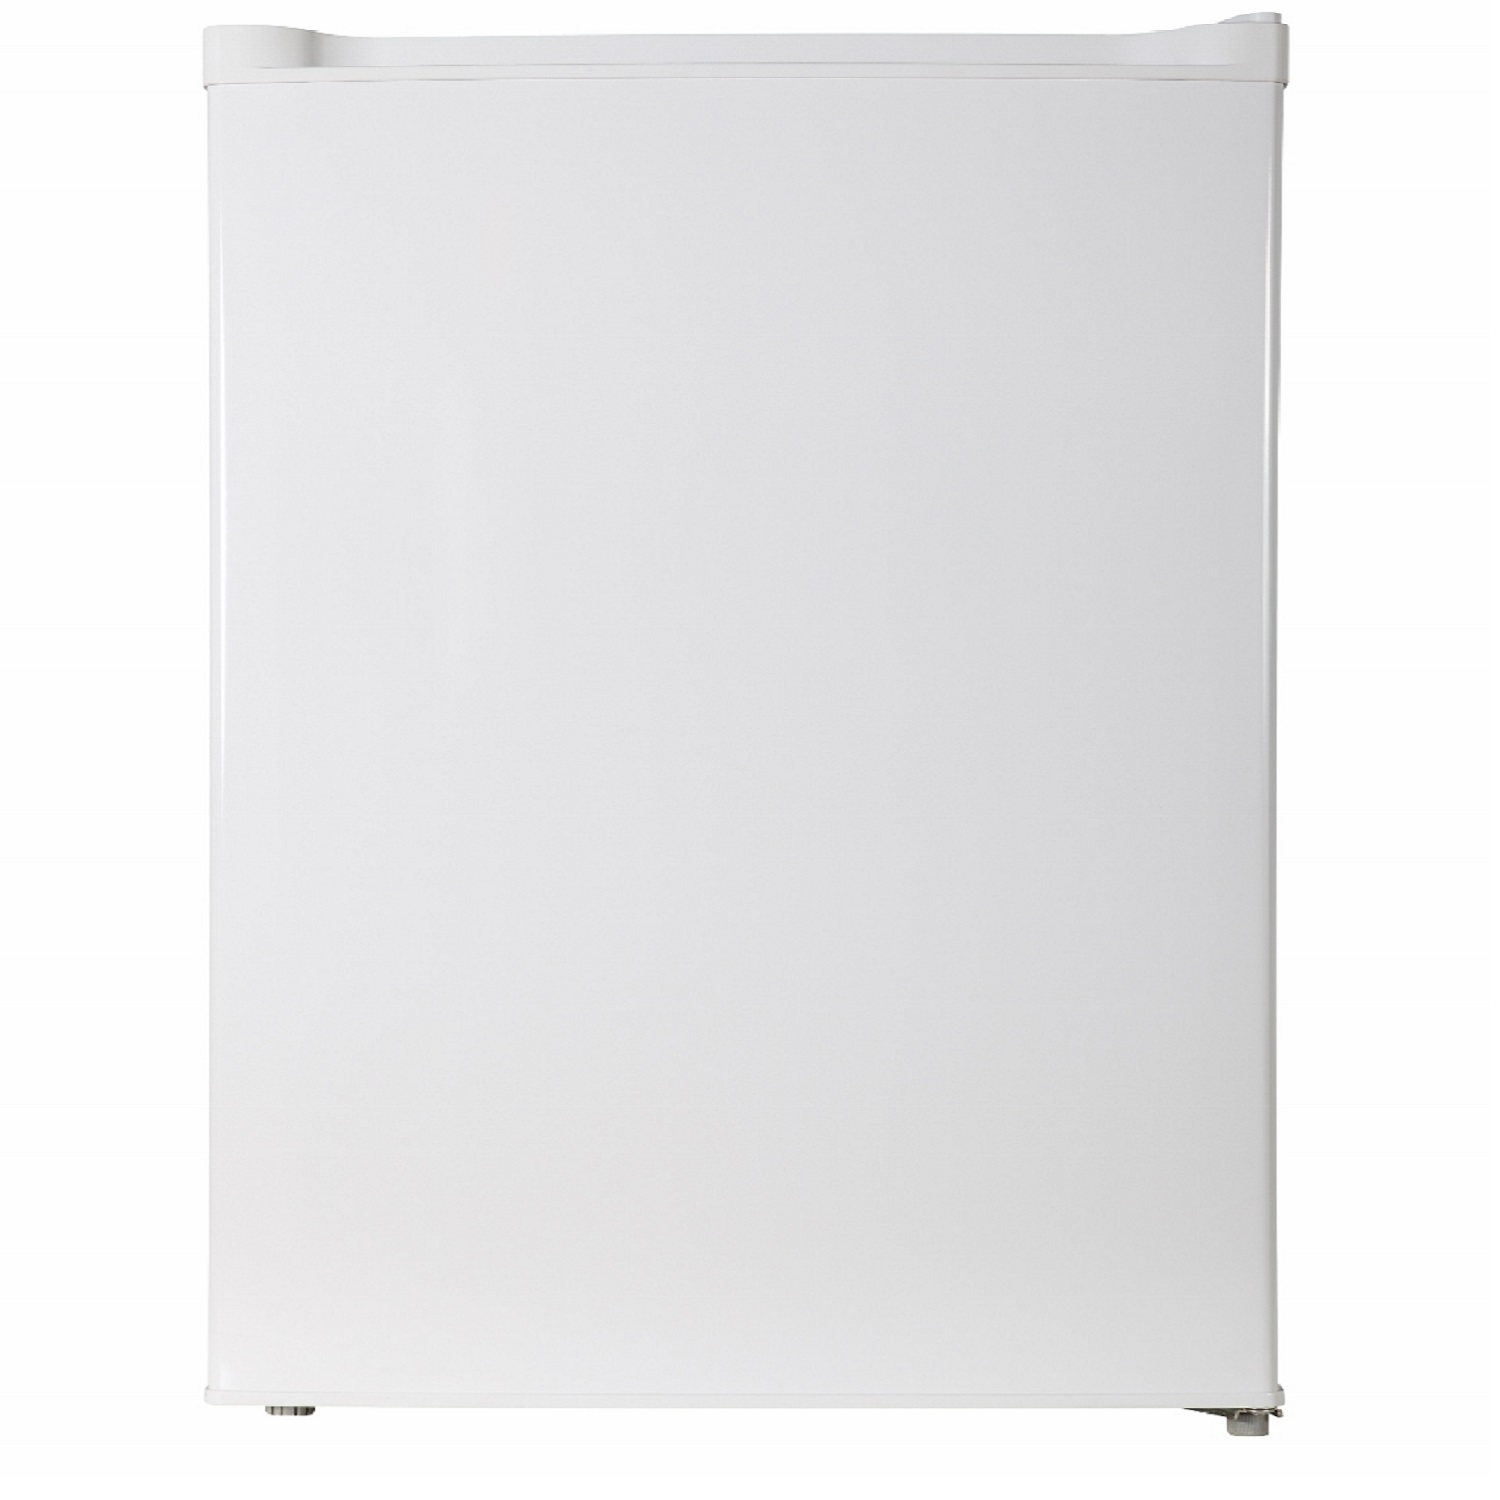 Equator-Midea 3 Cu. Ft Defrost Upright Freezer, White